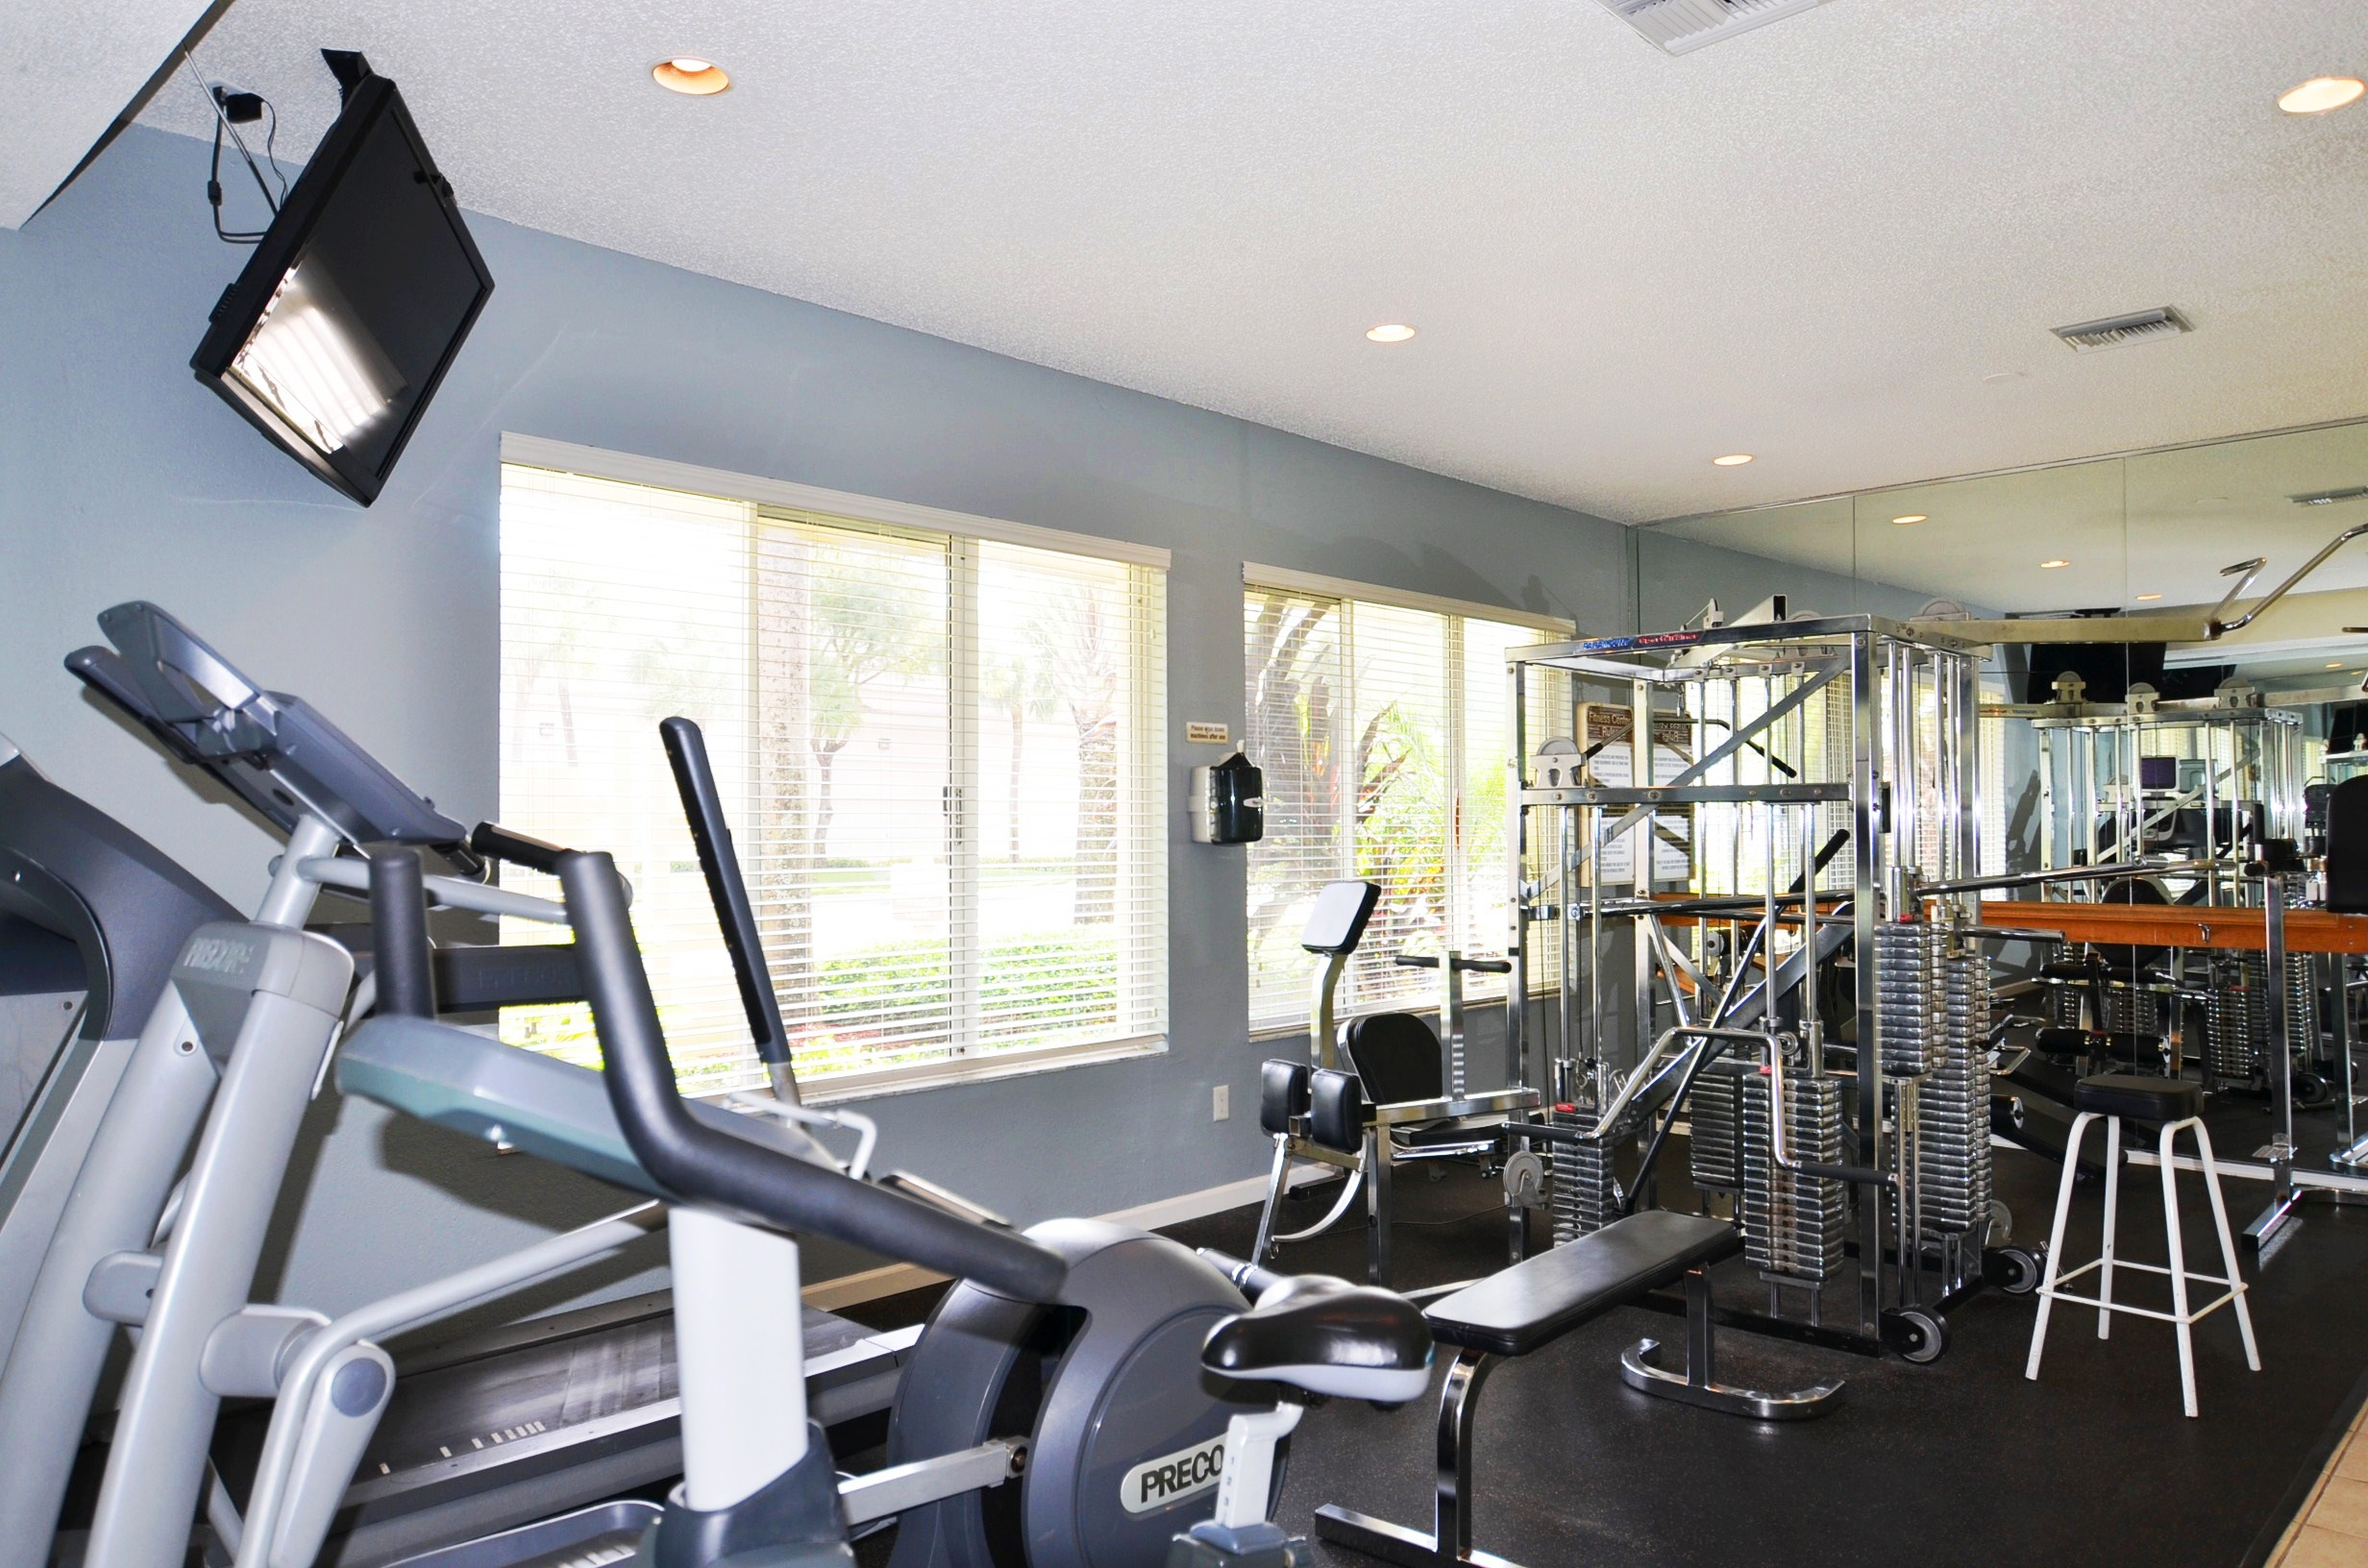 Treadmill, stationary bike and abduction machine at Waterford Point Apartments in Miami, Florida